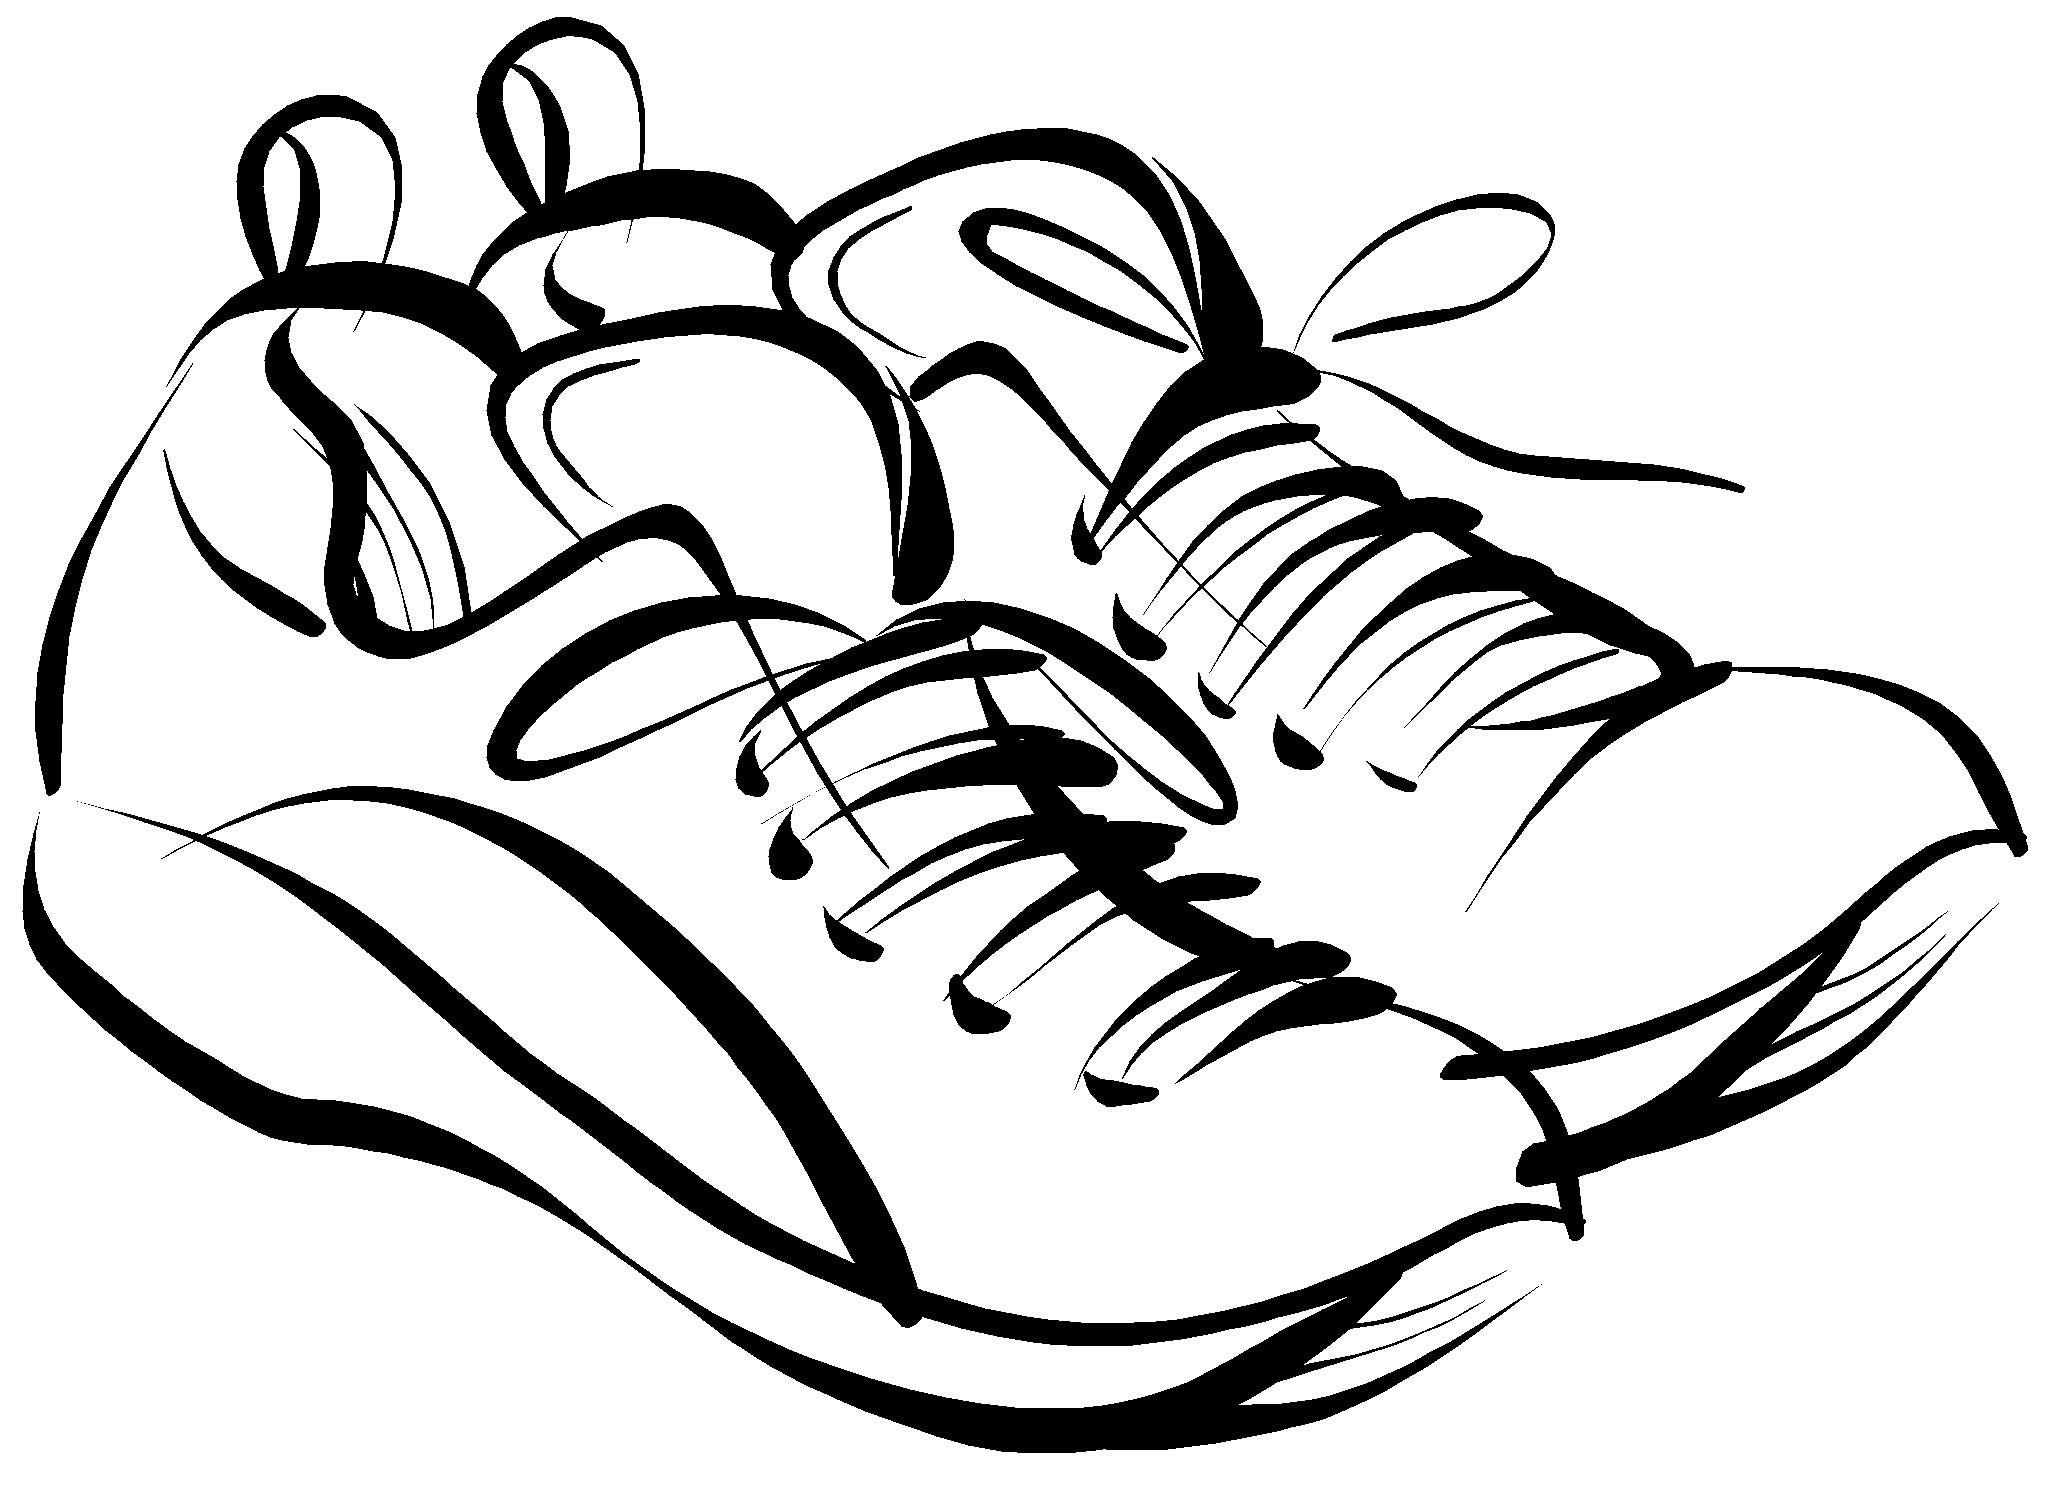 Track Shoe Running Shoes Clipart